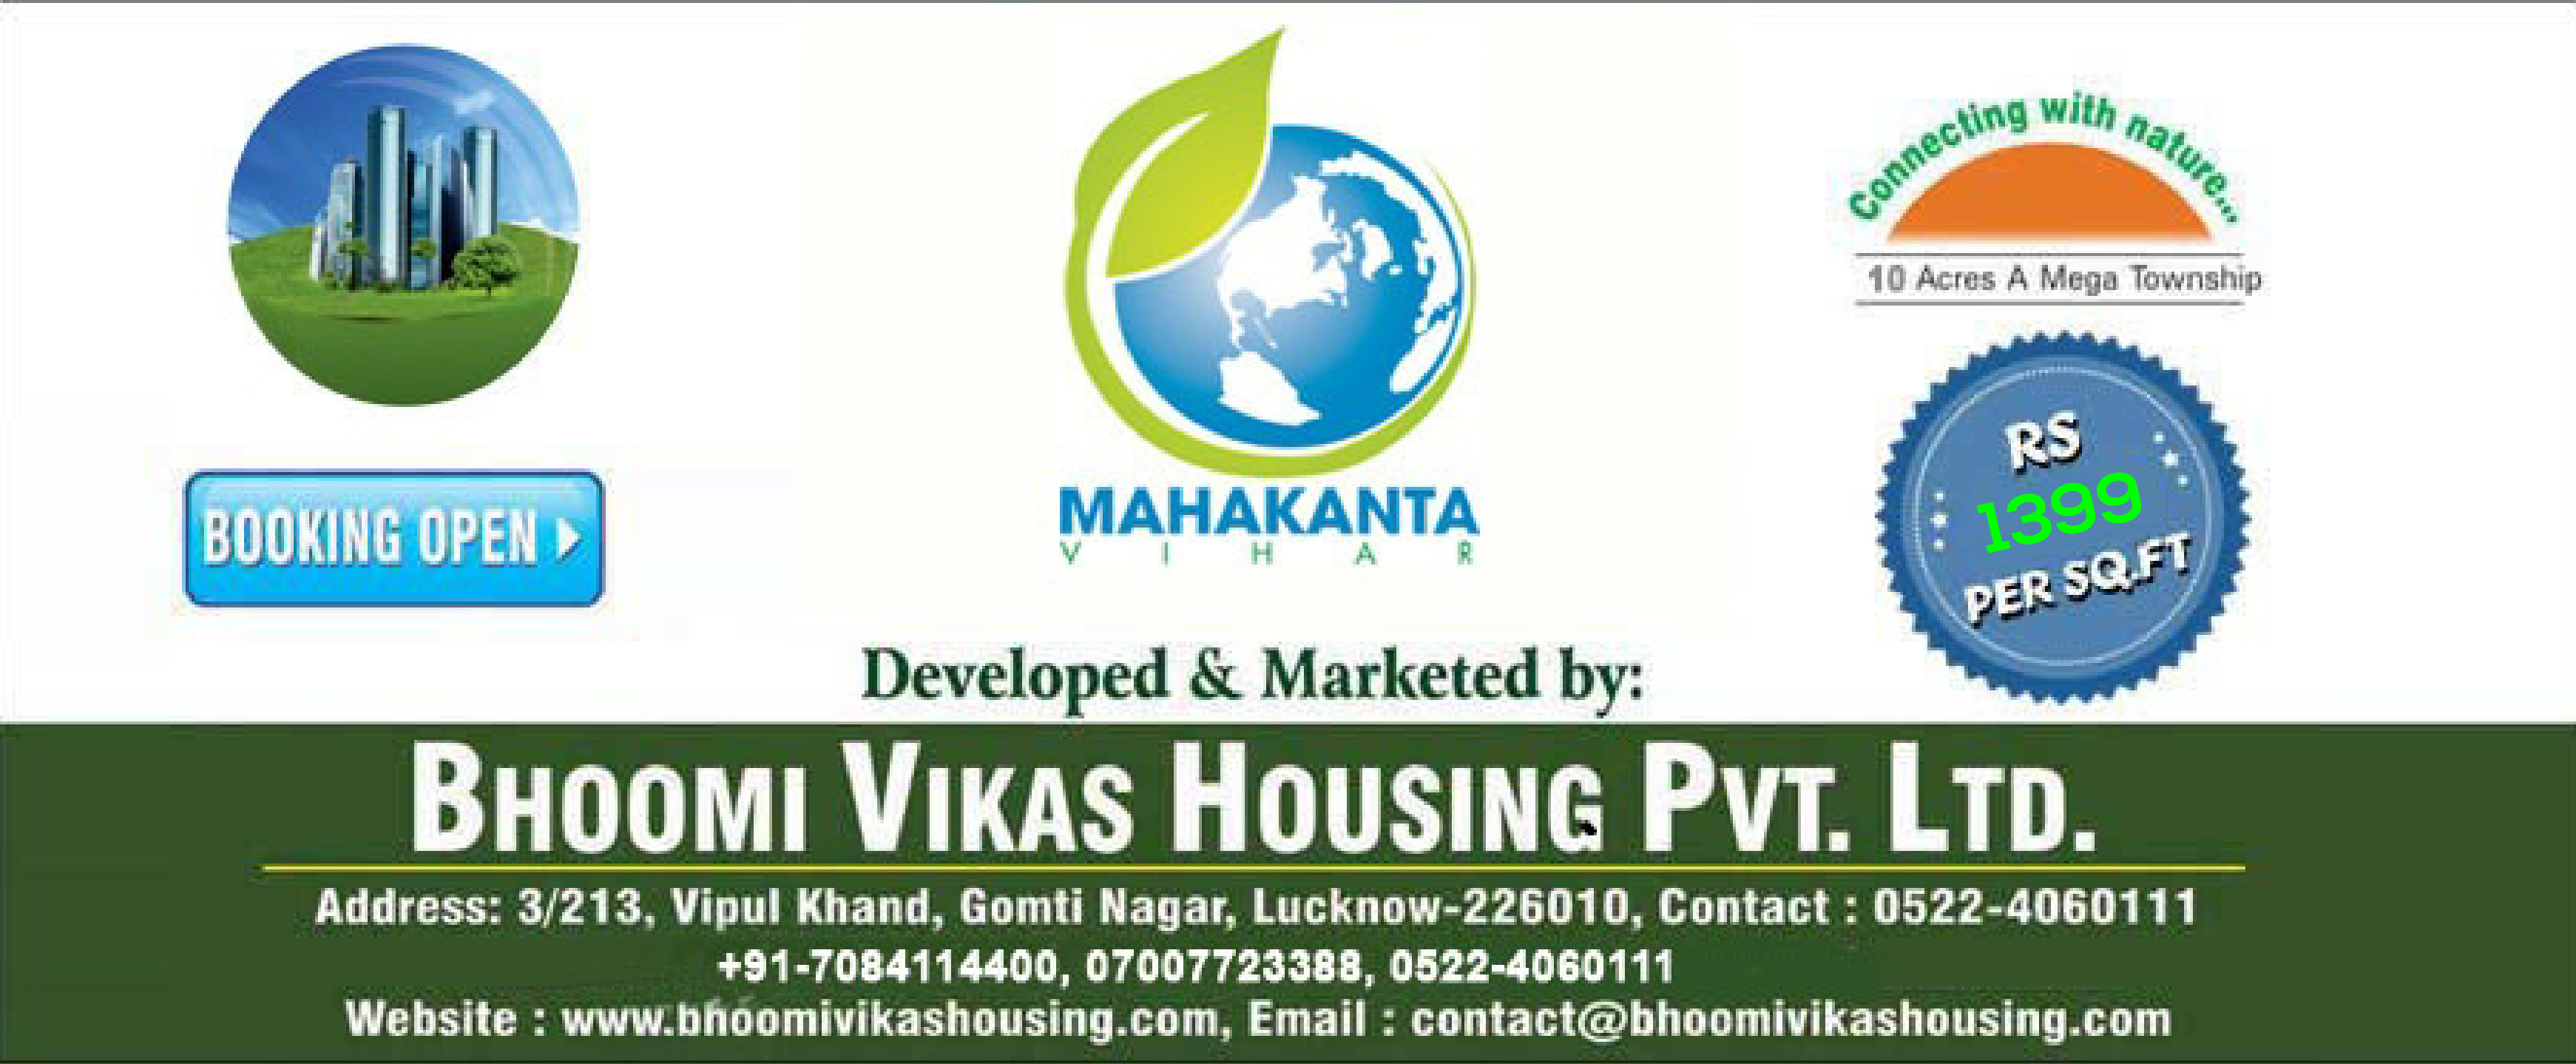 Bhoomi Vikas Housing Pvt. Ltd.